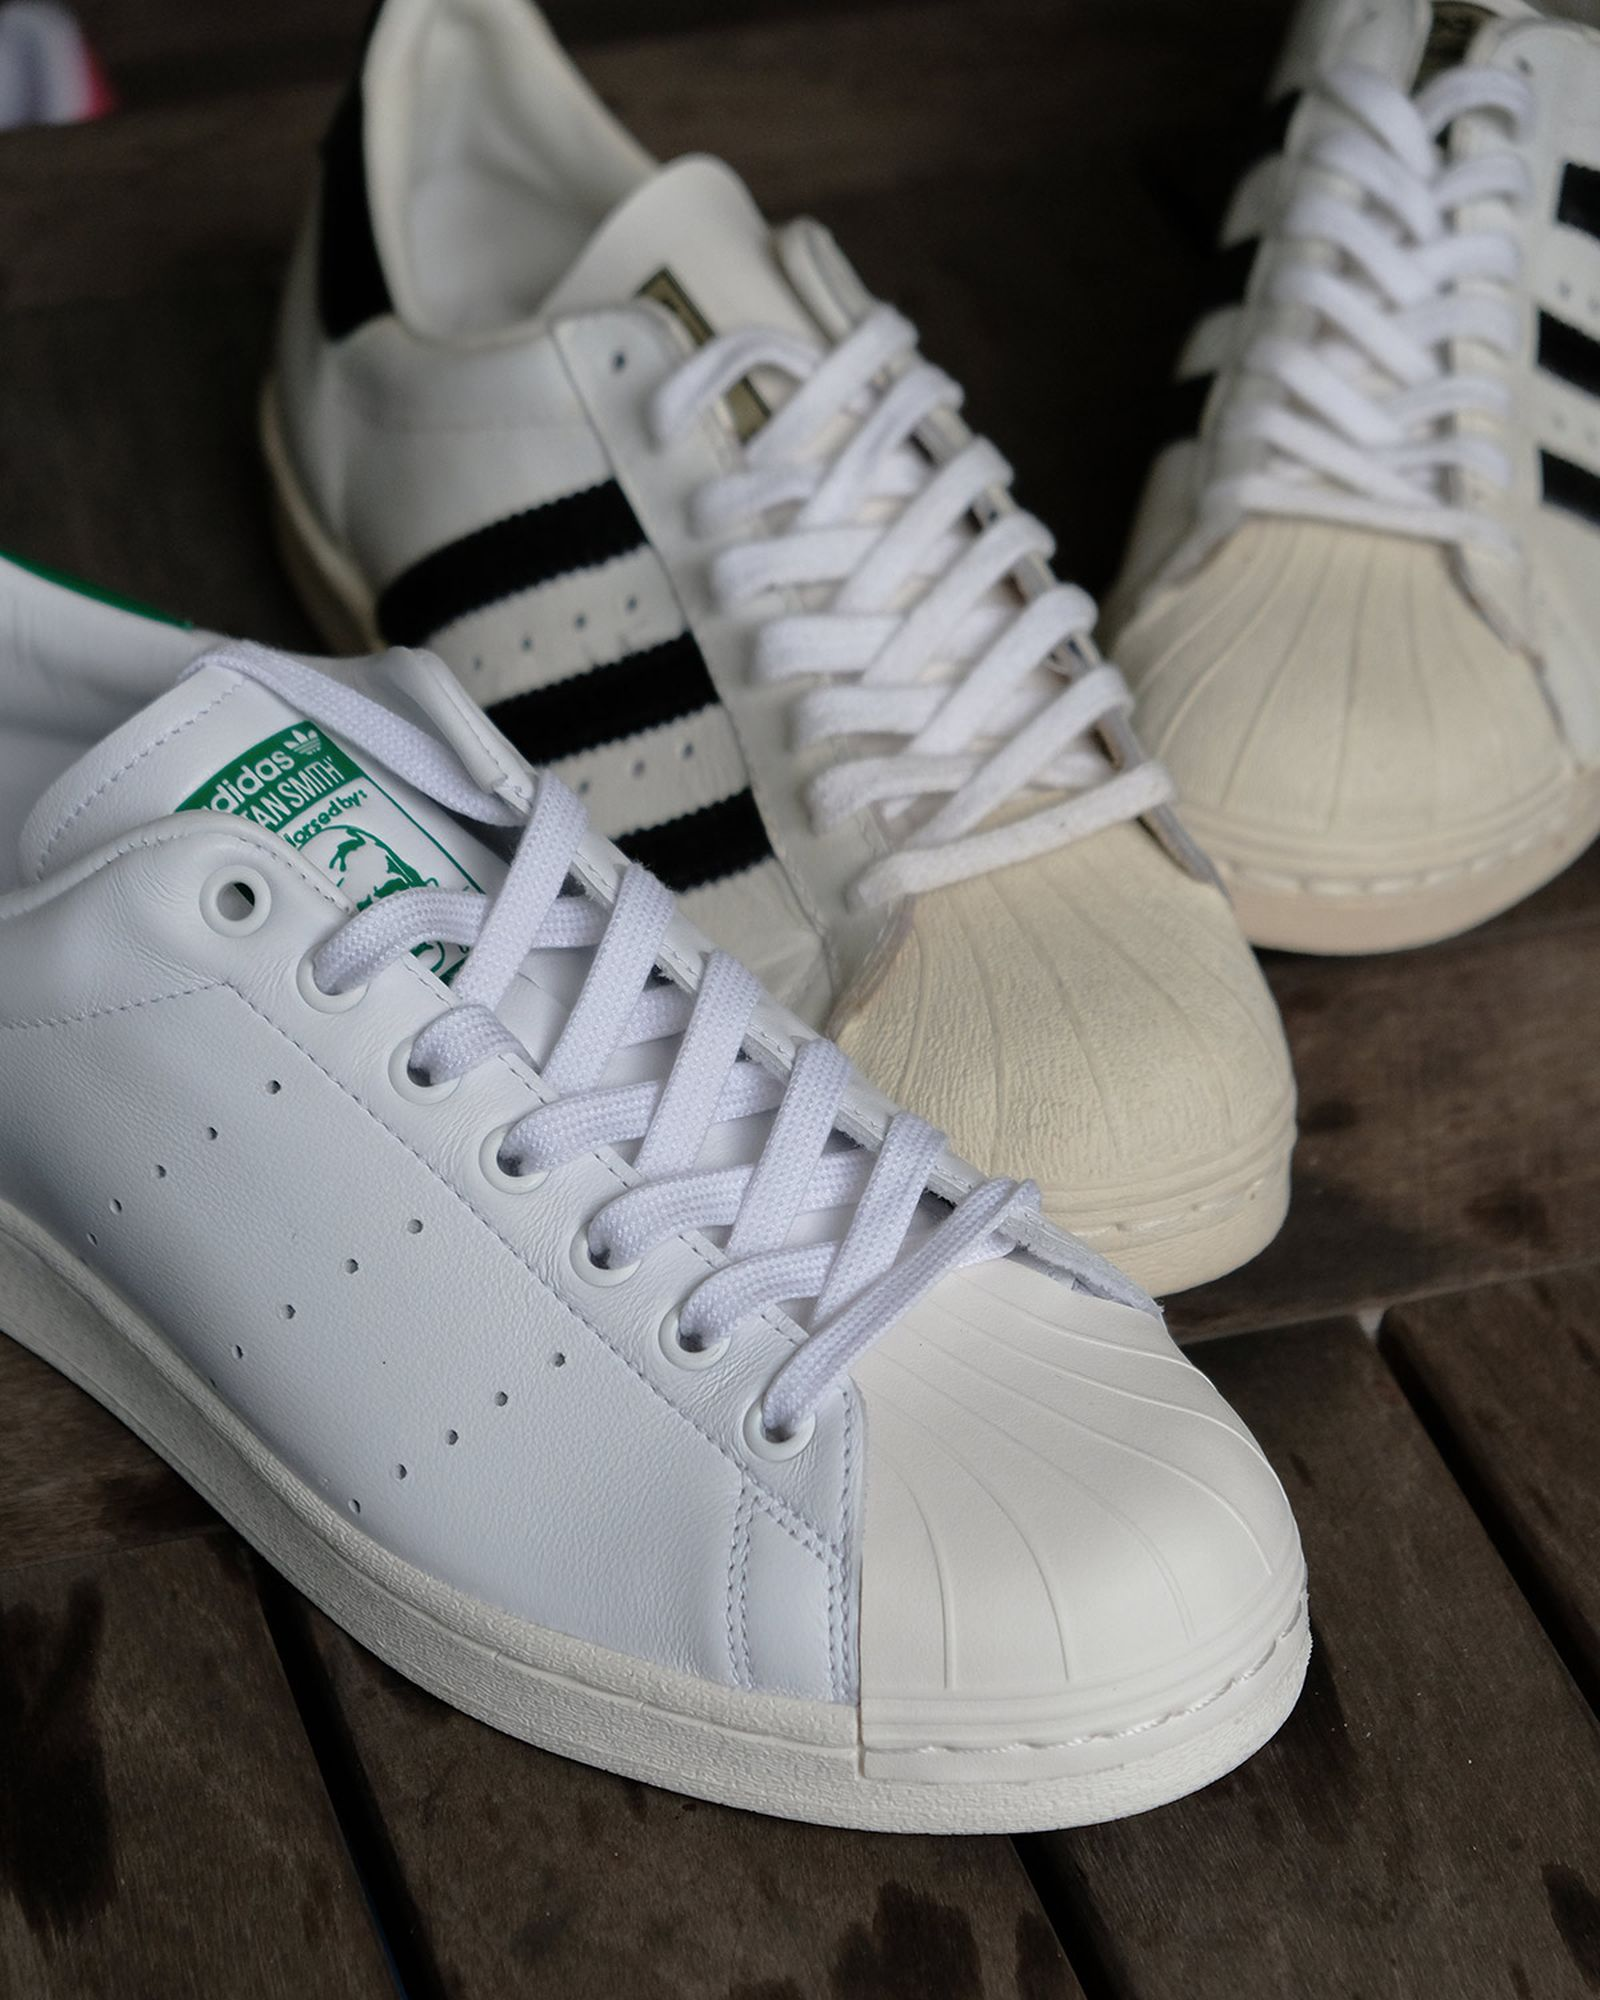 eddie-chang-adidas-collector-17